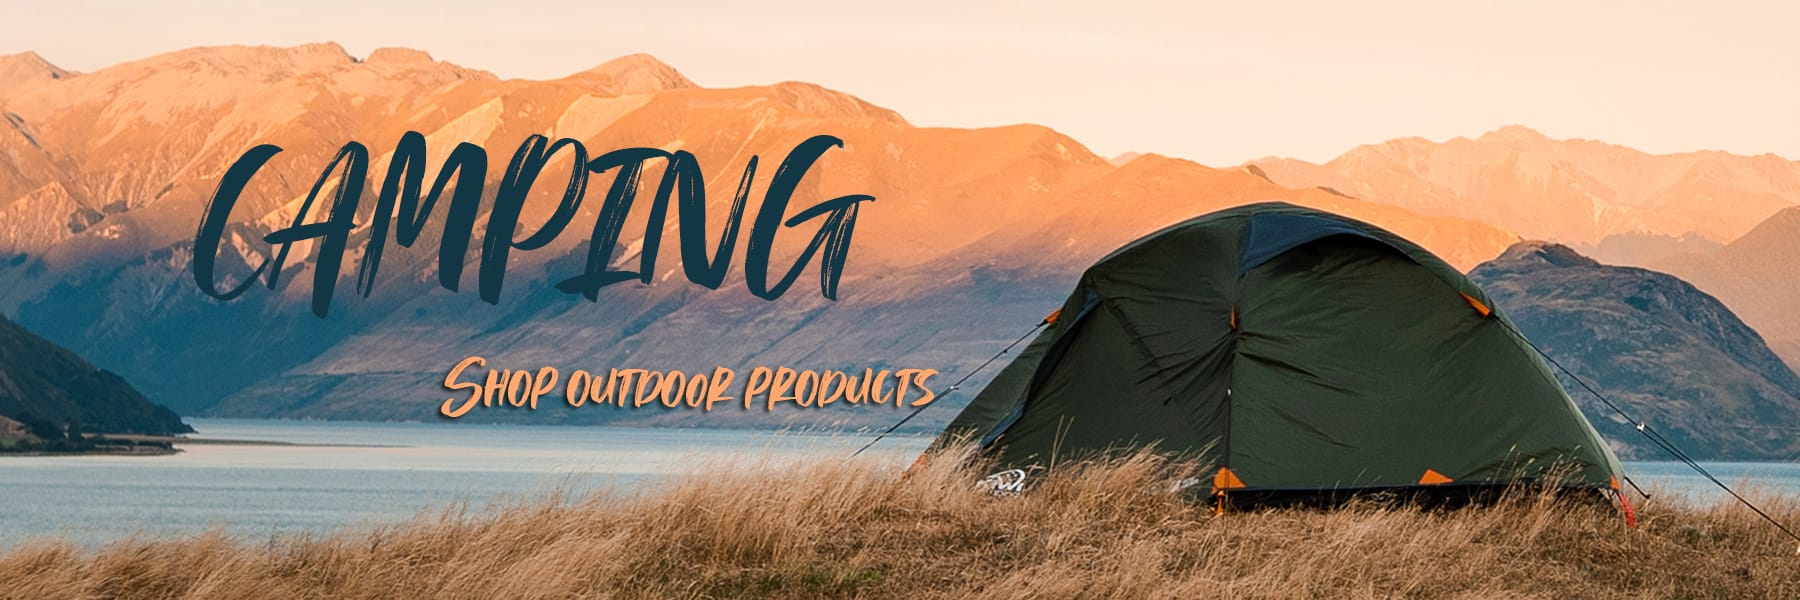 Wholesale Outdoor Products